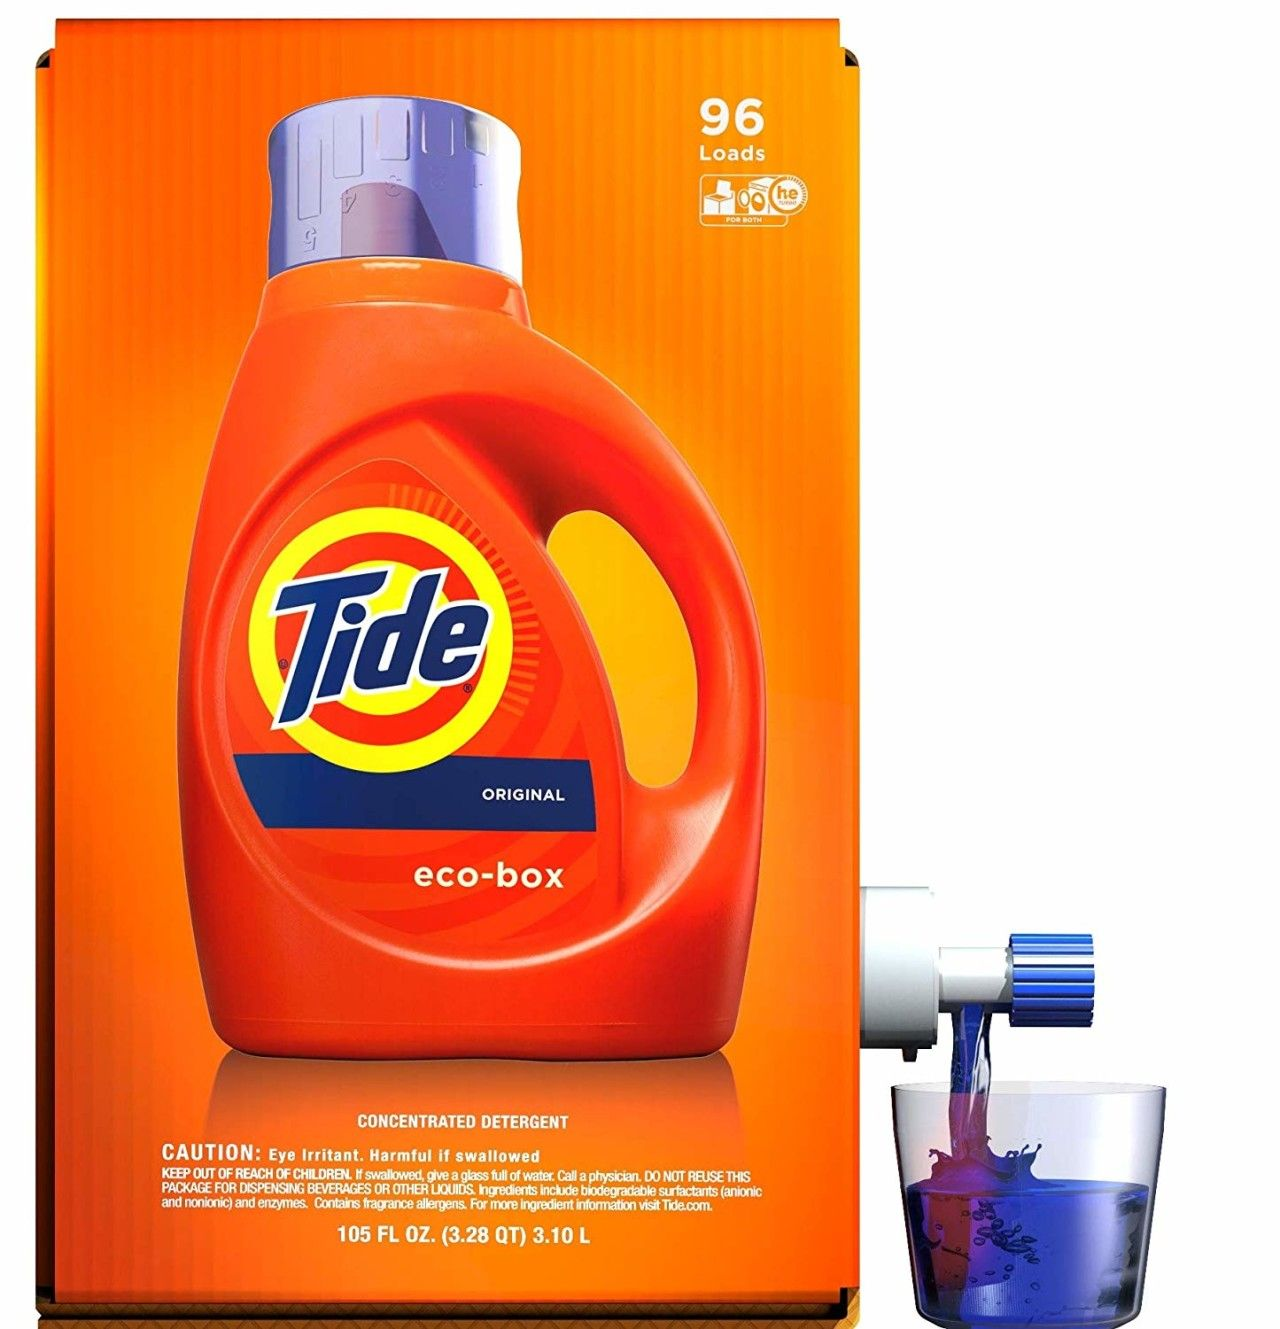 Tide Laundry Detergent Liquid Eco Box Concentrated Original Scent 96 Loads As Low As 12 25 Shipped Become A Coupon Queen In 2020 Laundry Liquid Tide Laundry Detergent Laundry Detergent